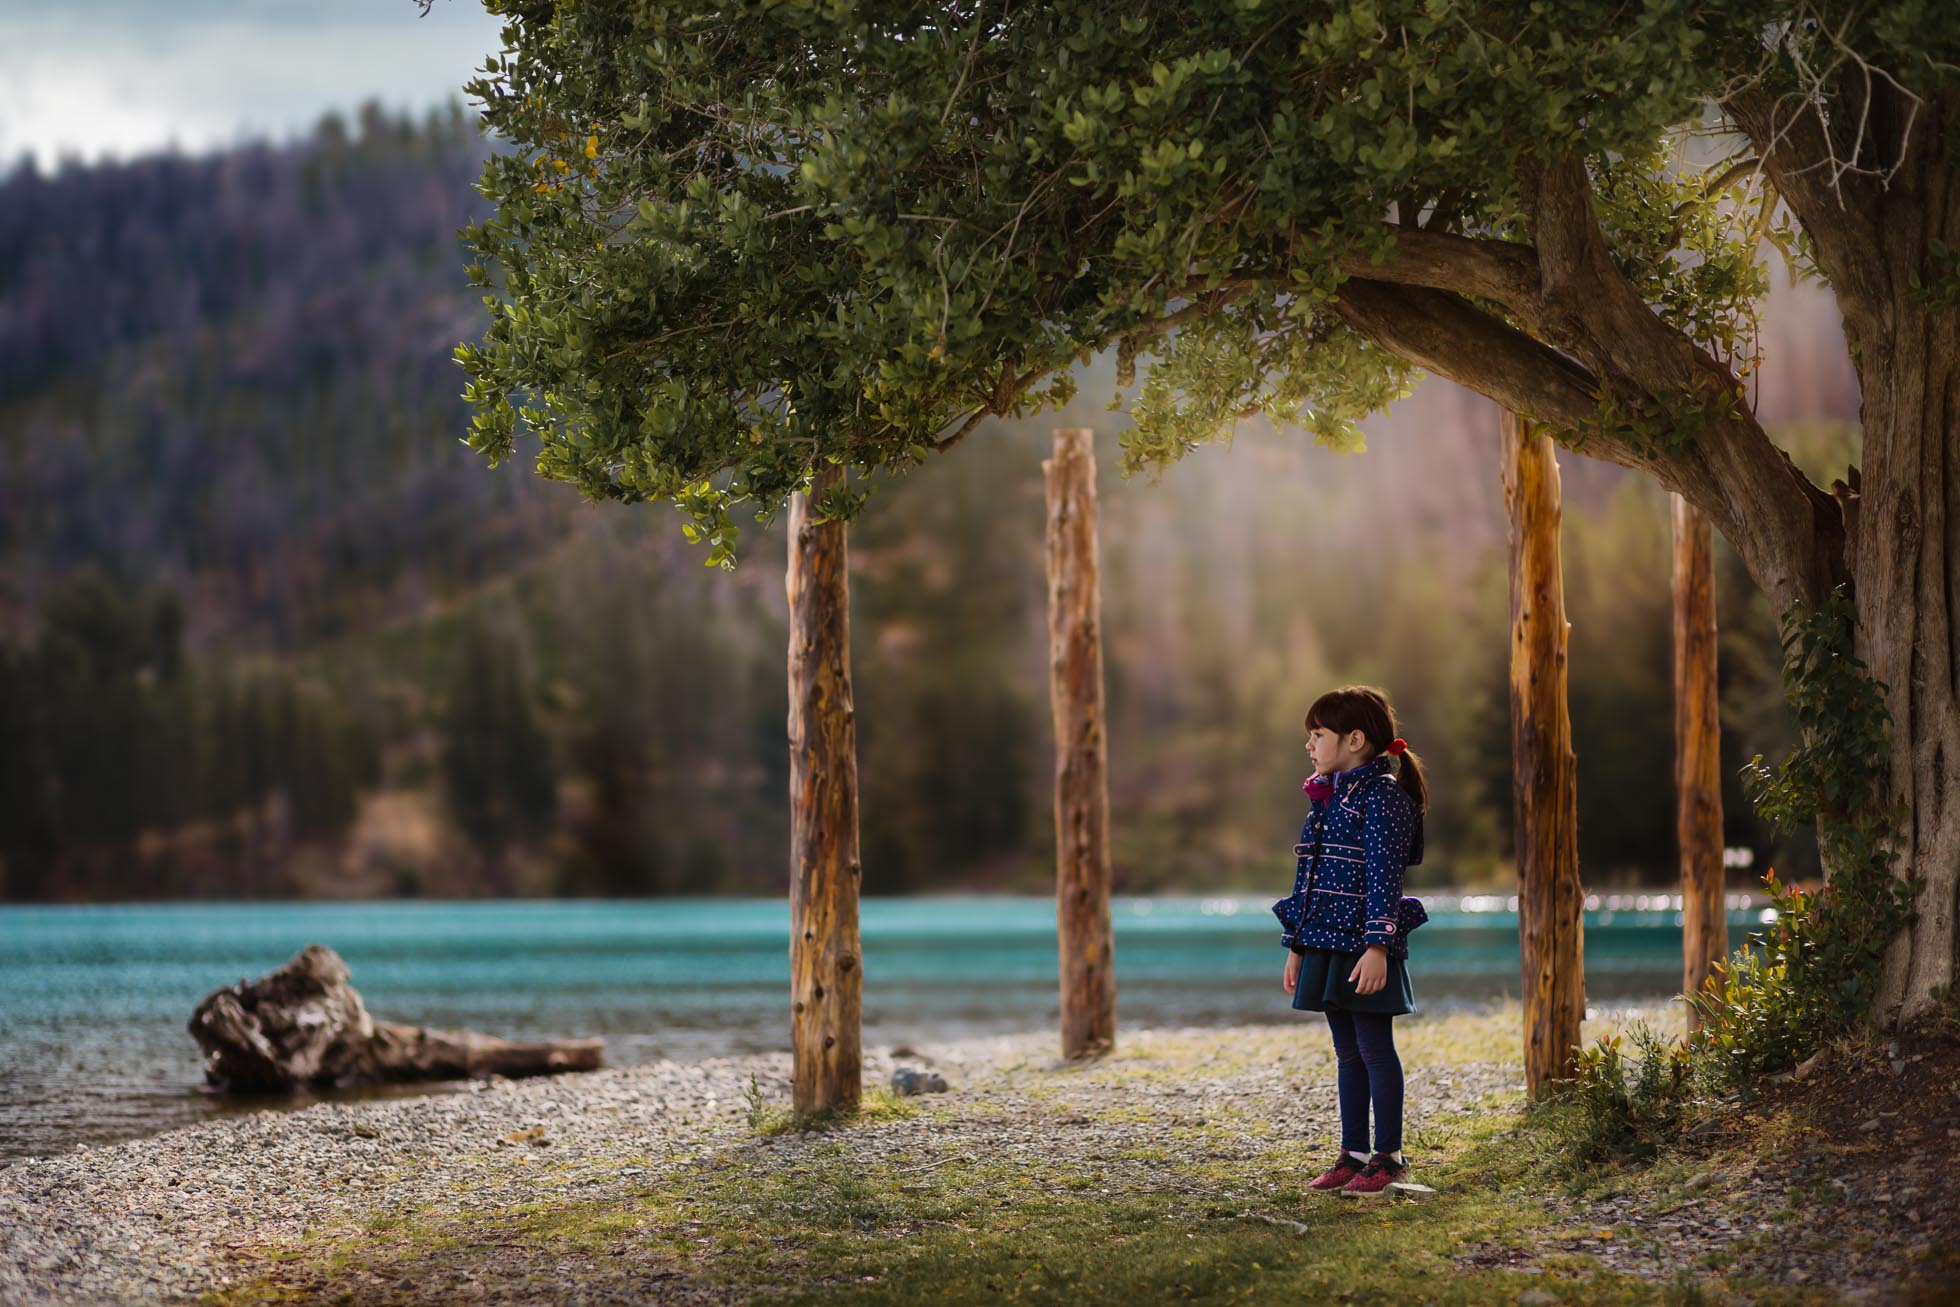 Framed by nature by Monica Cutraro